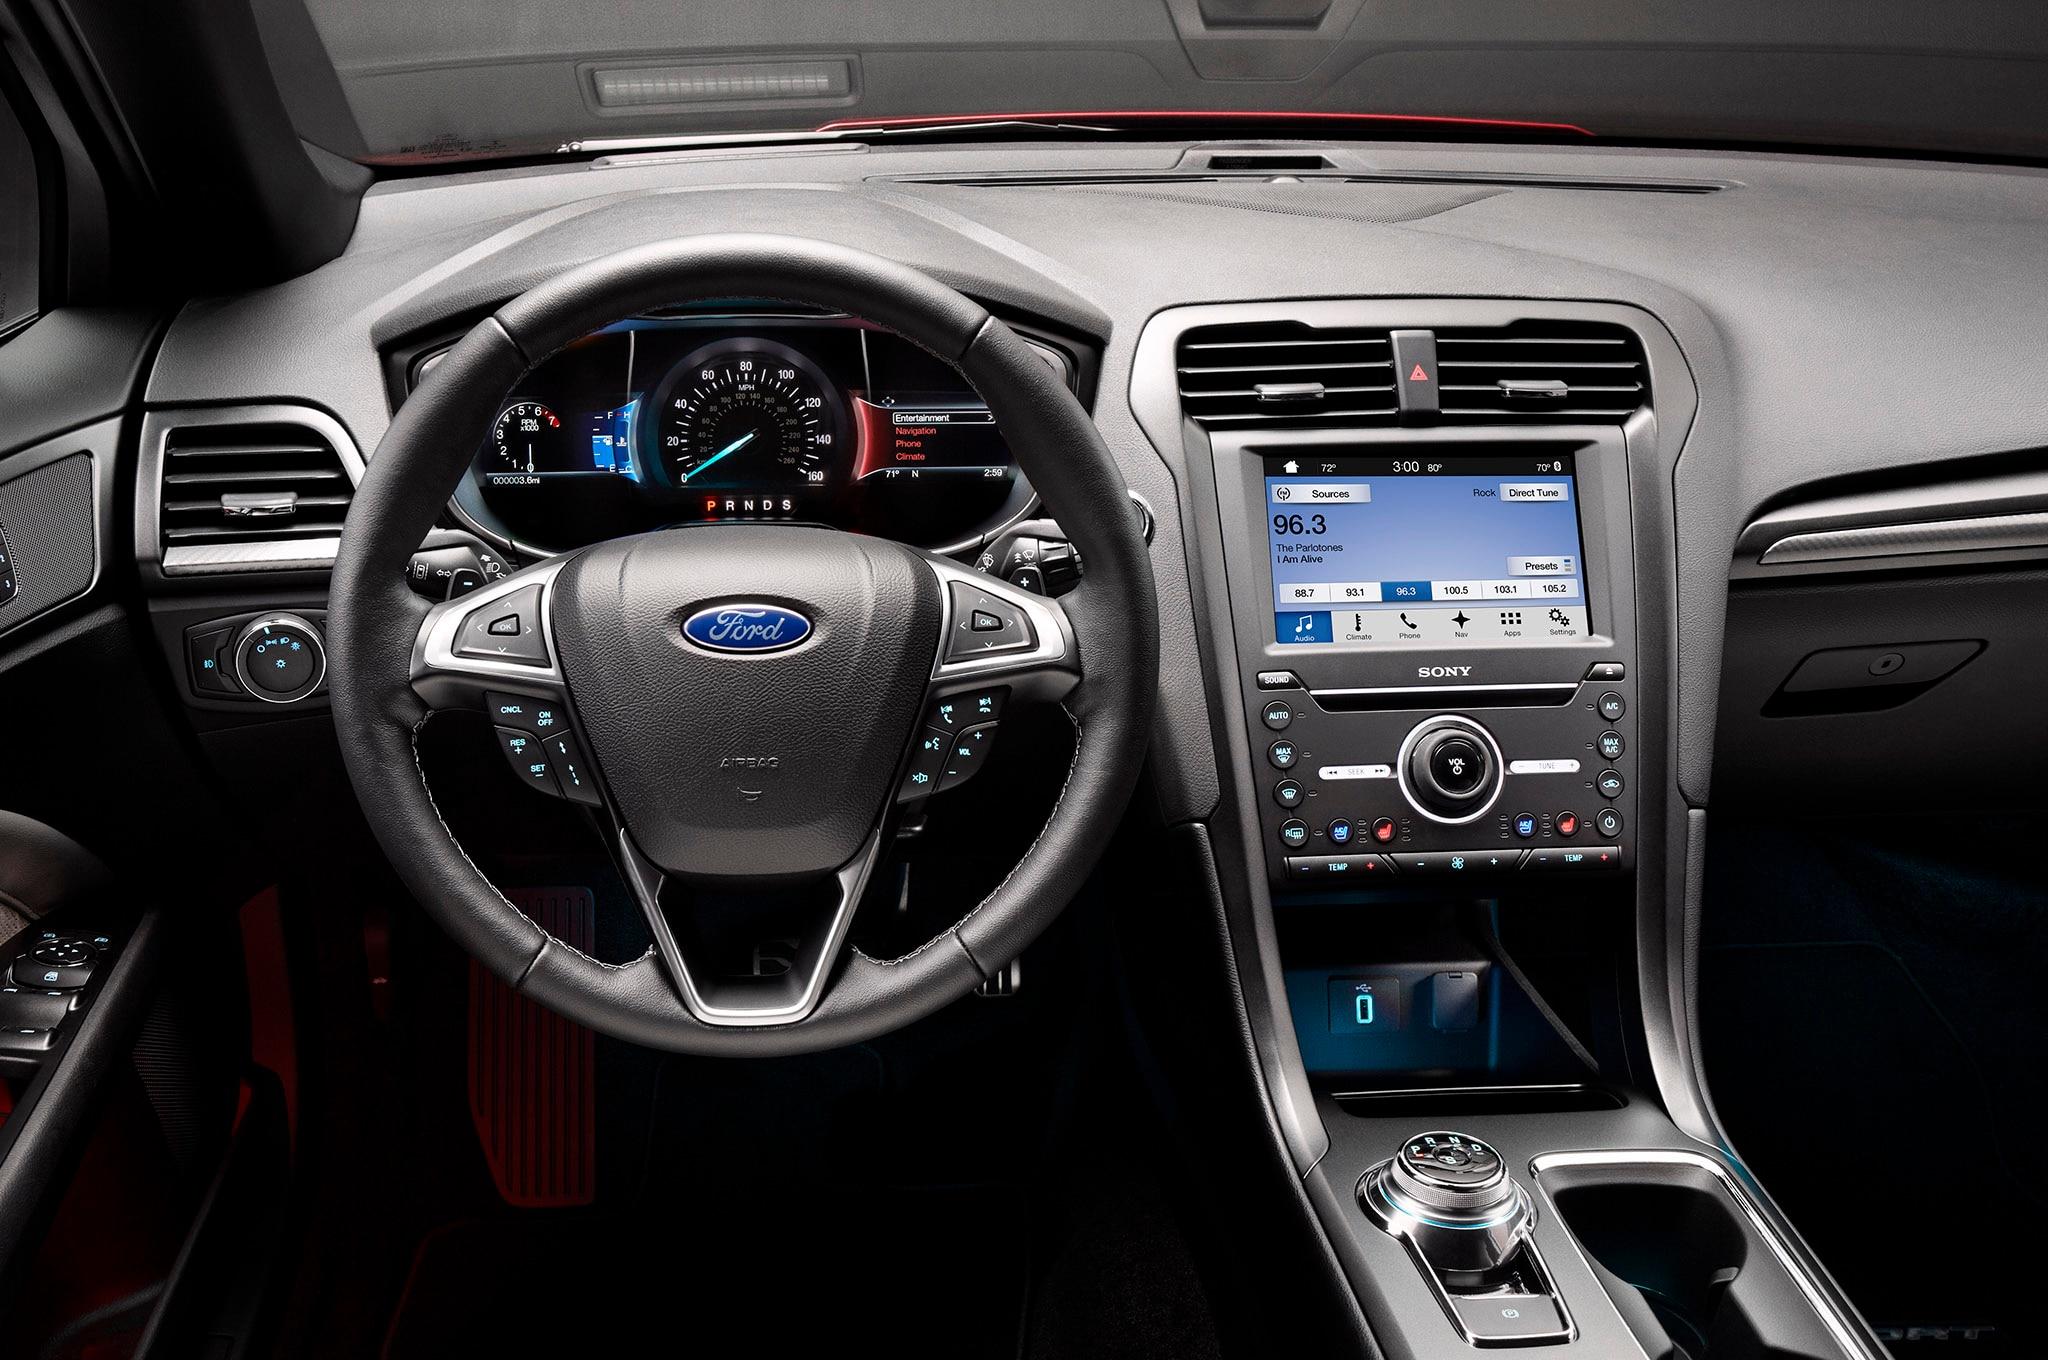 2017 Ford Fusion Refreshed for Detroit, Adds 325-HP V6 Sport Model